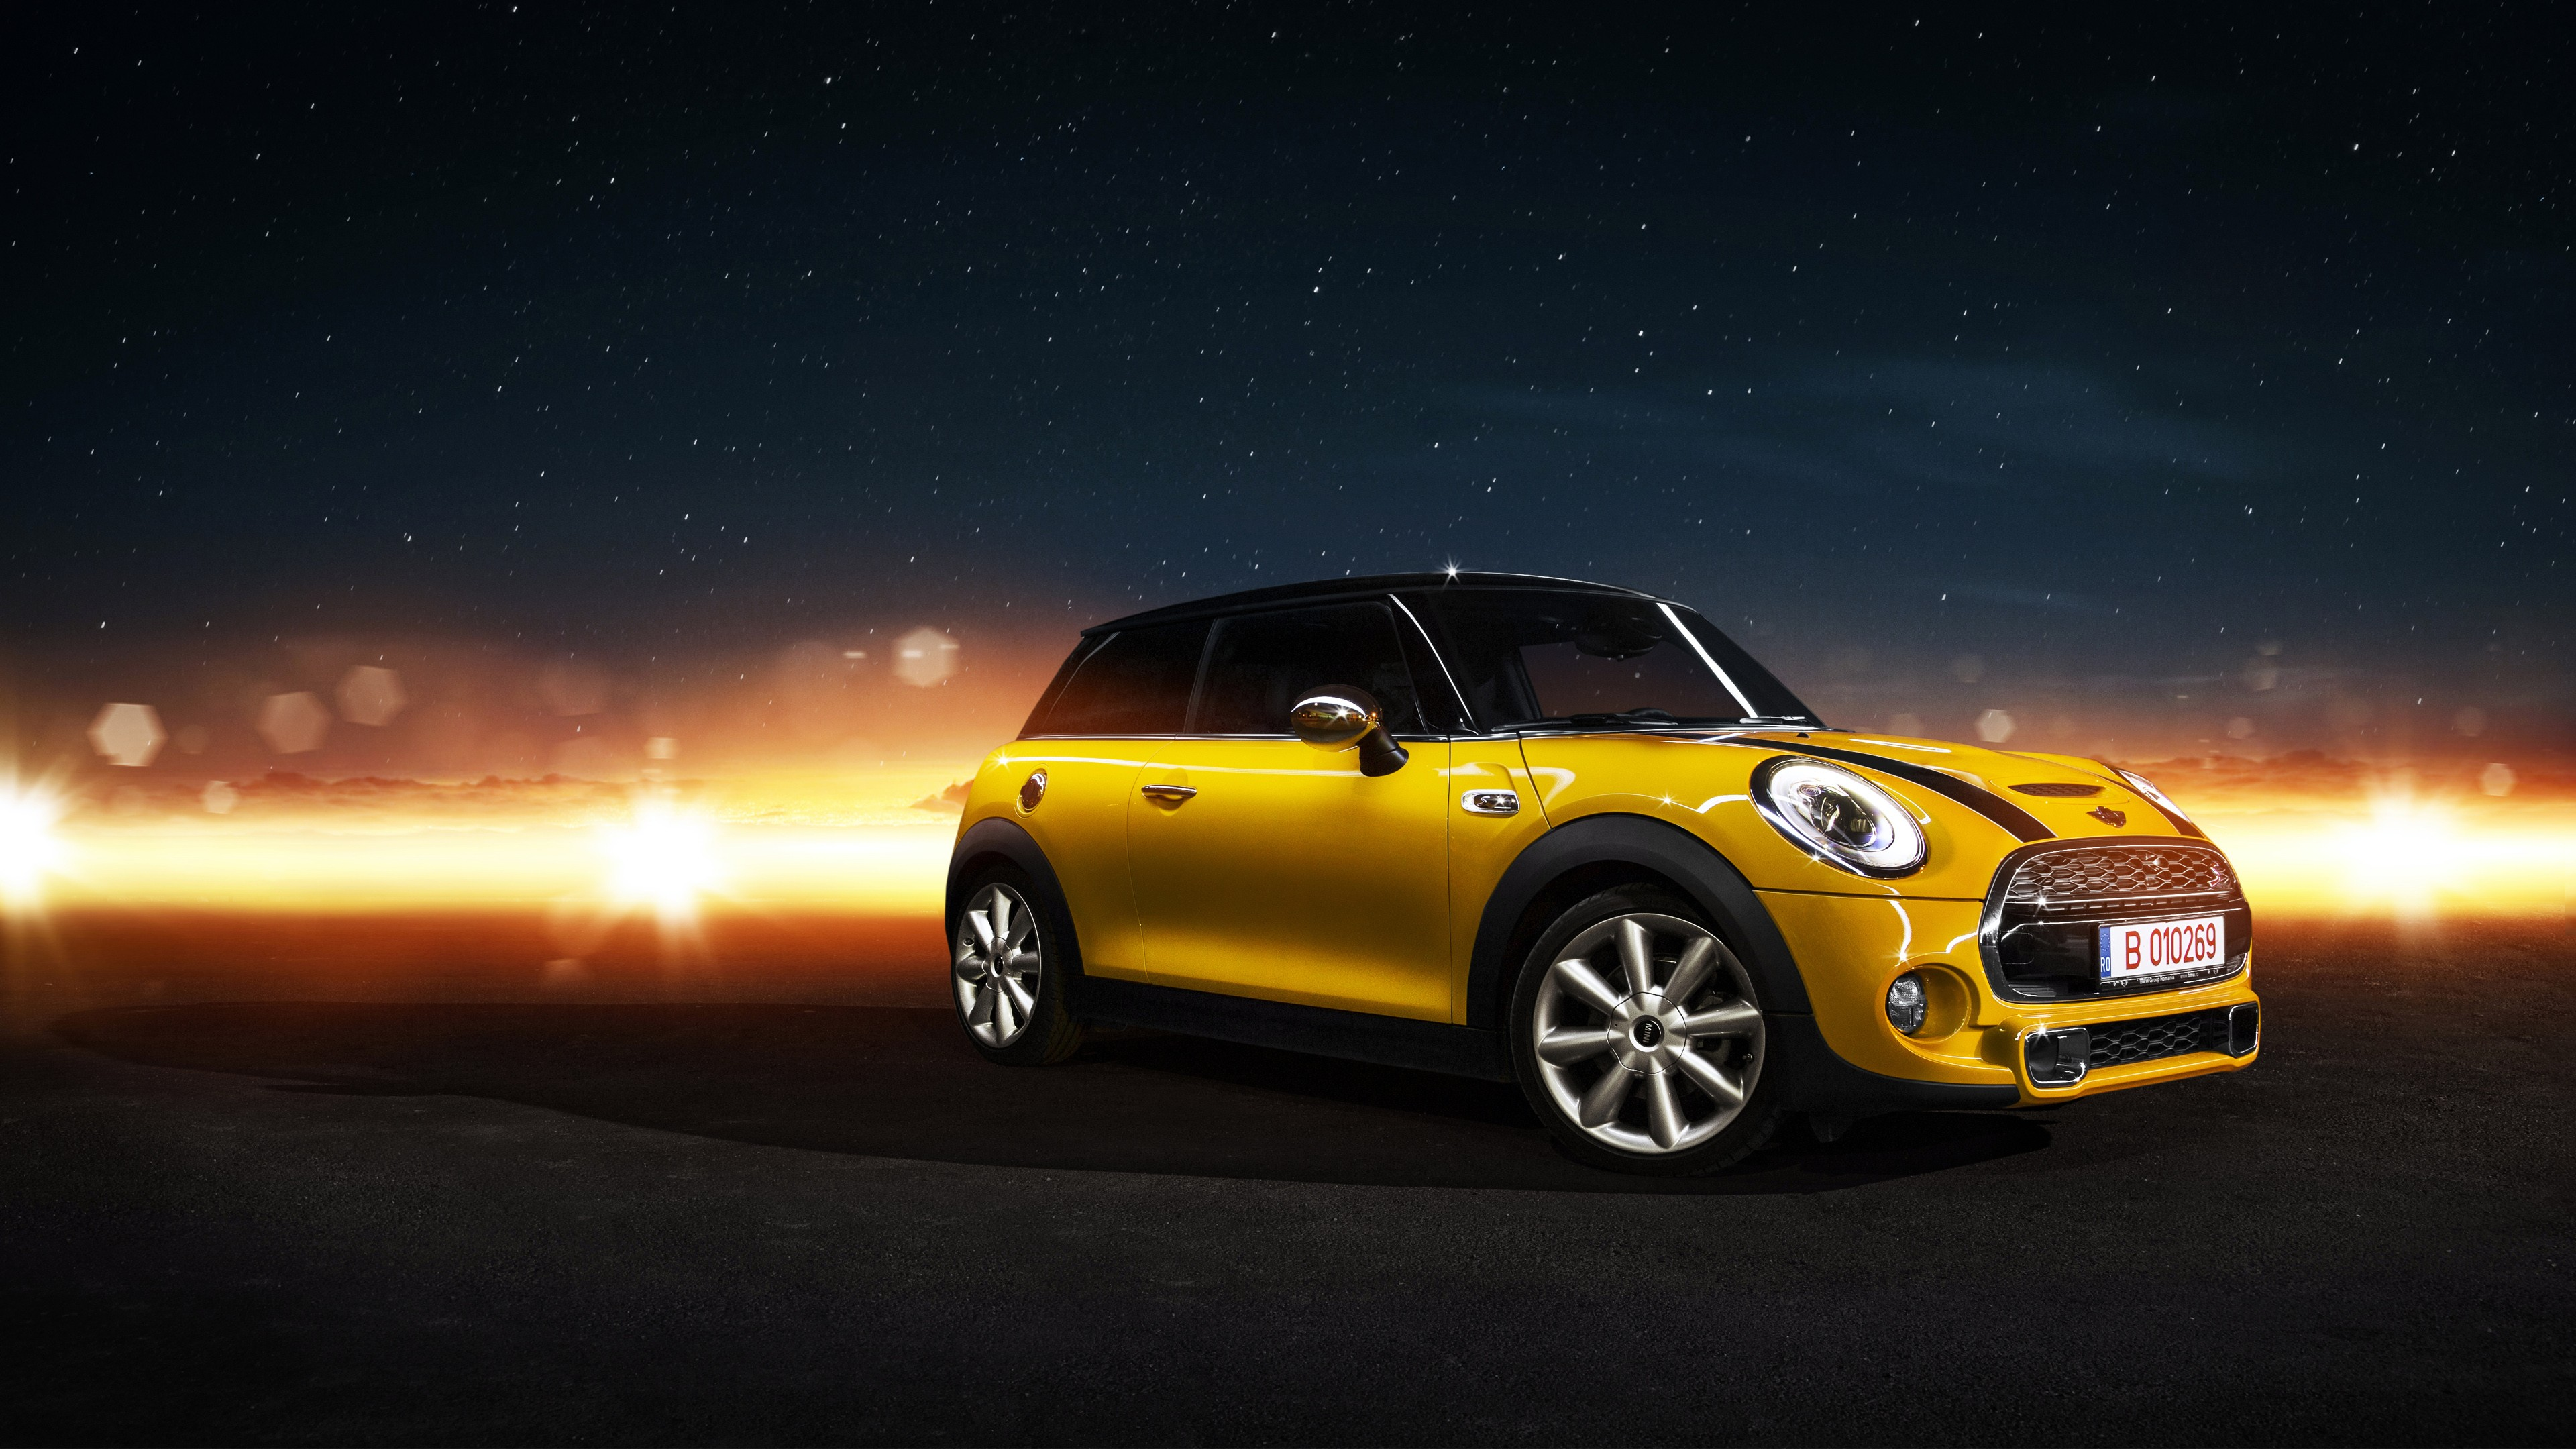 mini cooper s wallpaper hd car wallpapers id 6044